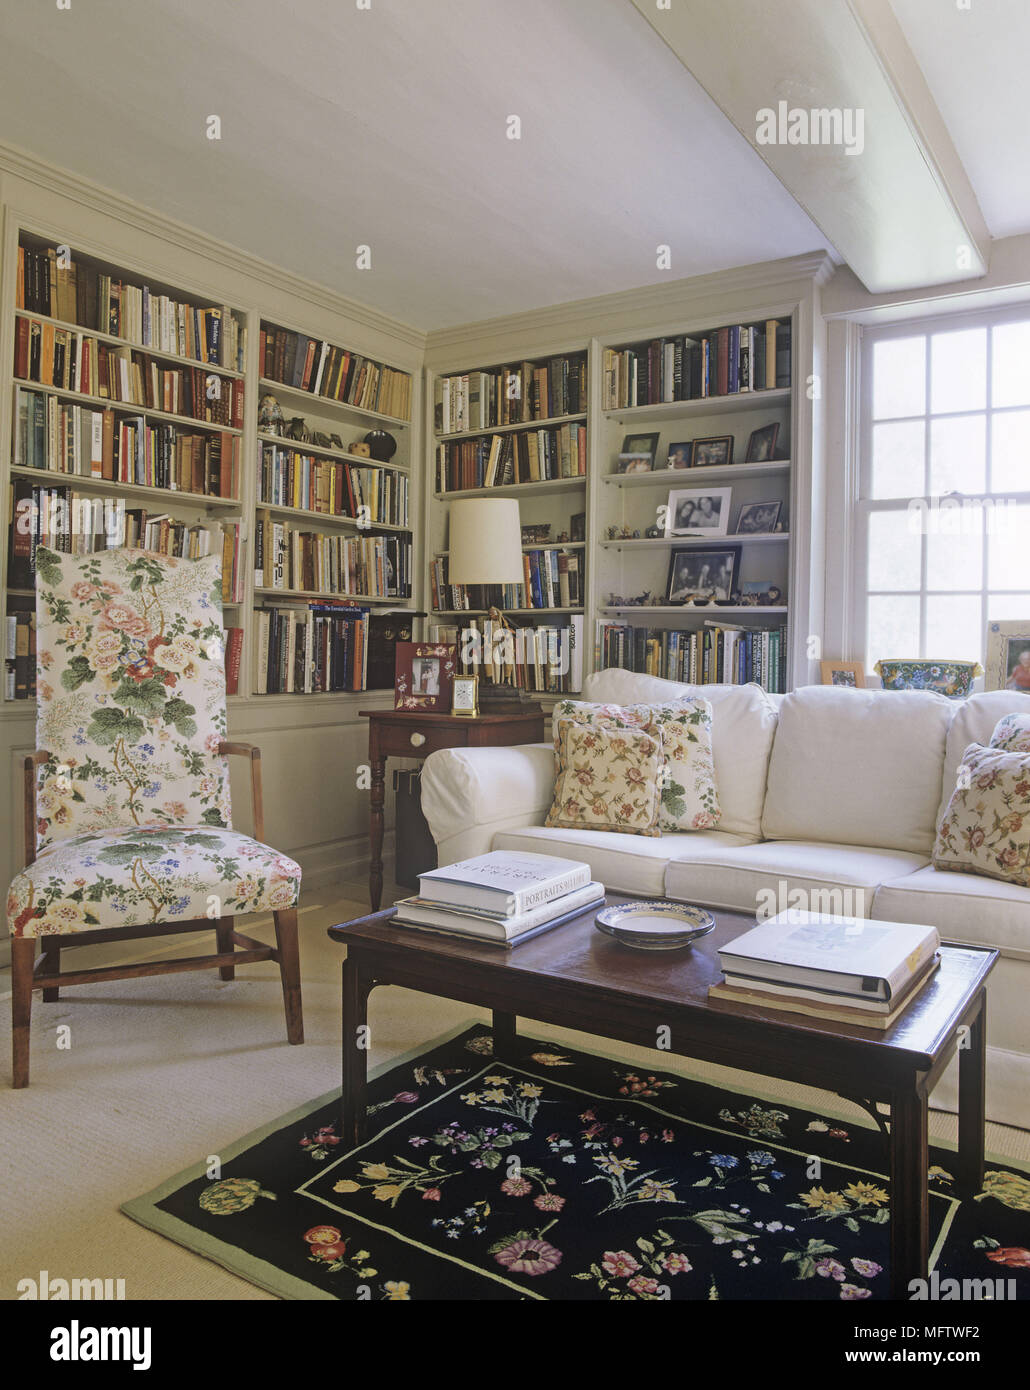 A Traditional Sitting Room With Corner Bookshelf And Small Coffee Table Seating Upholstered Floral Pattern